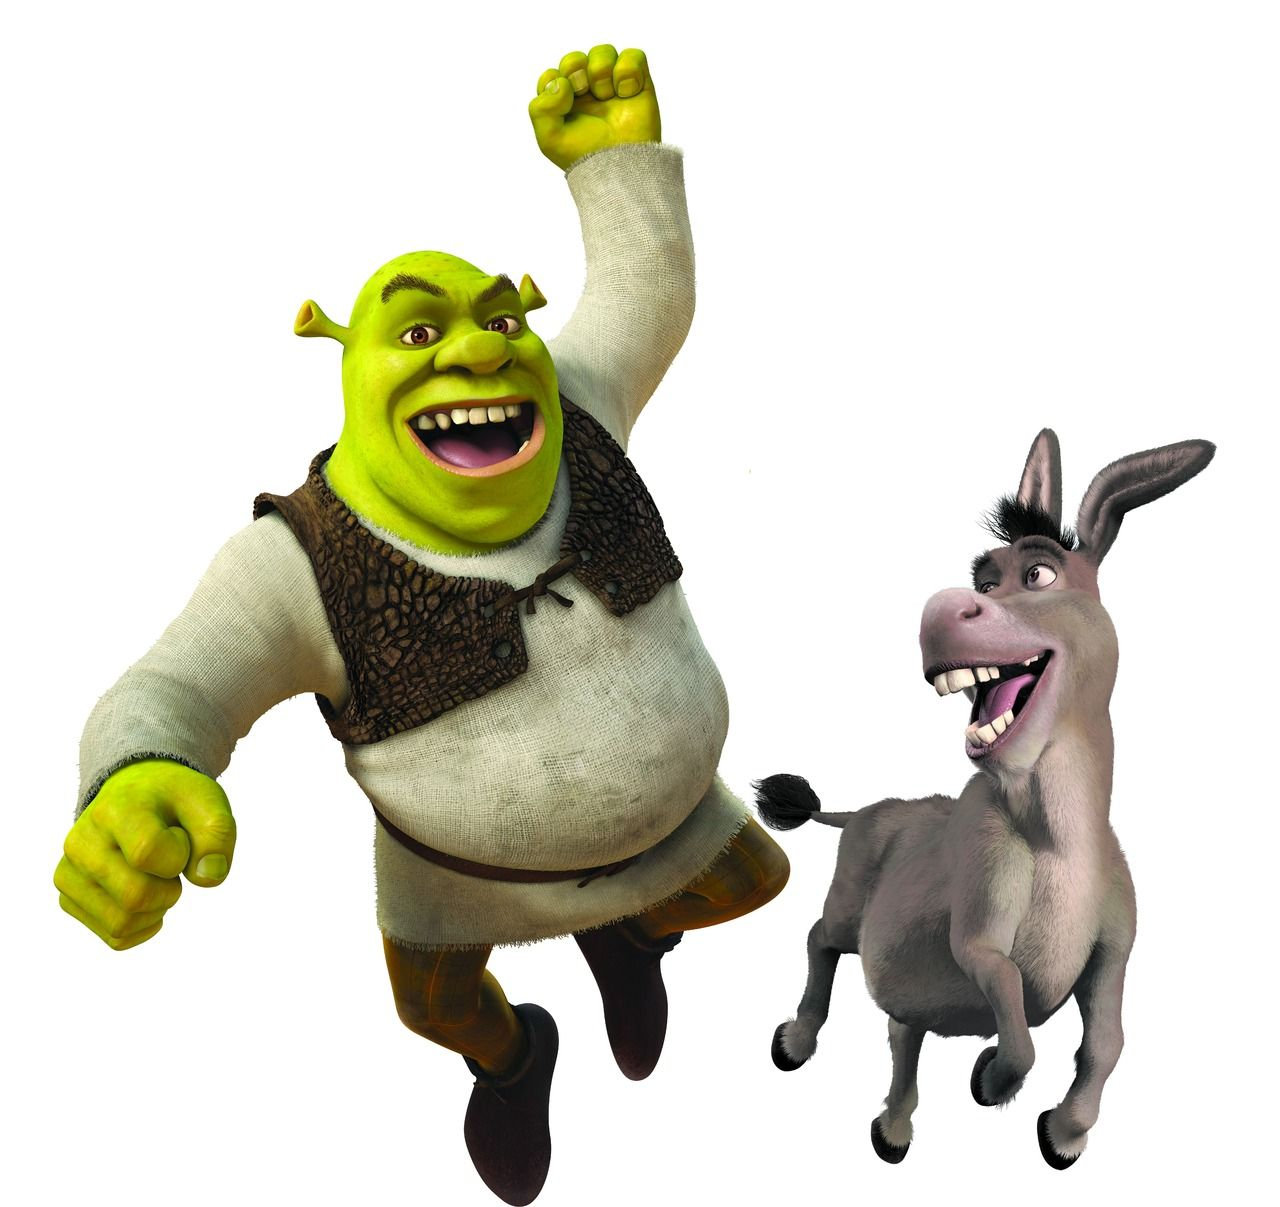 shrek character promo animation pinterest shrek character rh pinterest co uk shrek clipart png shark clipart black and white